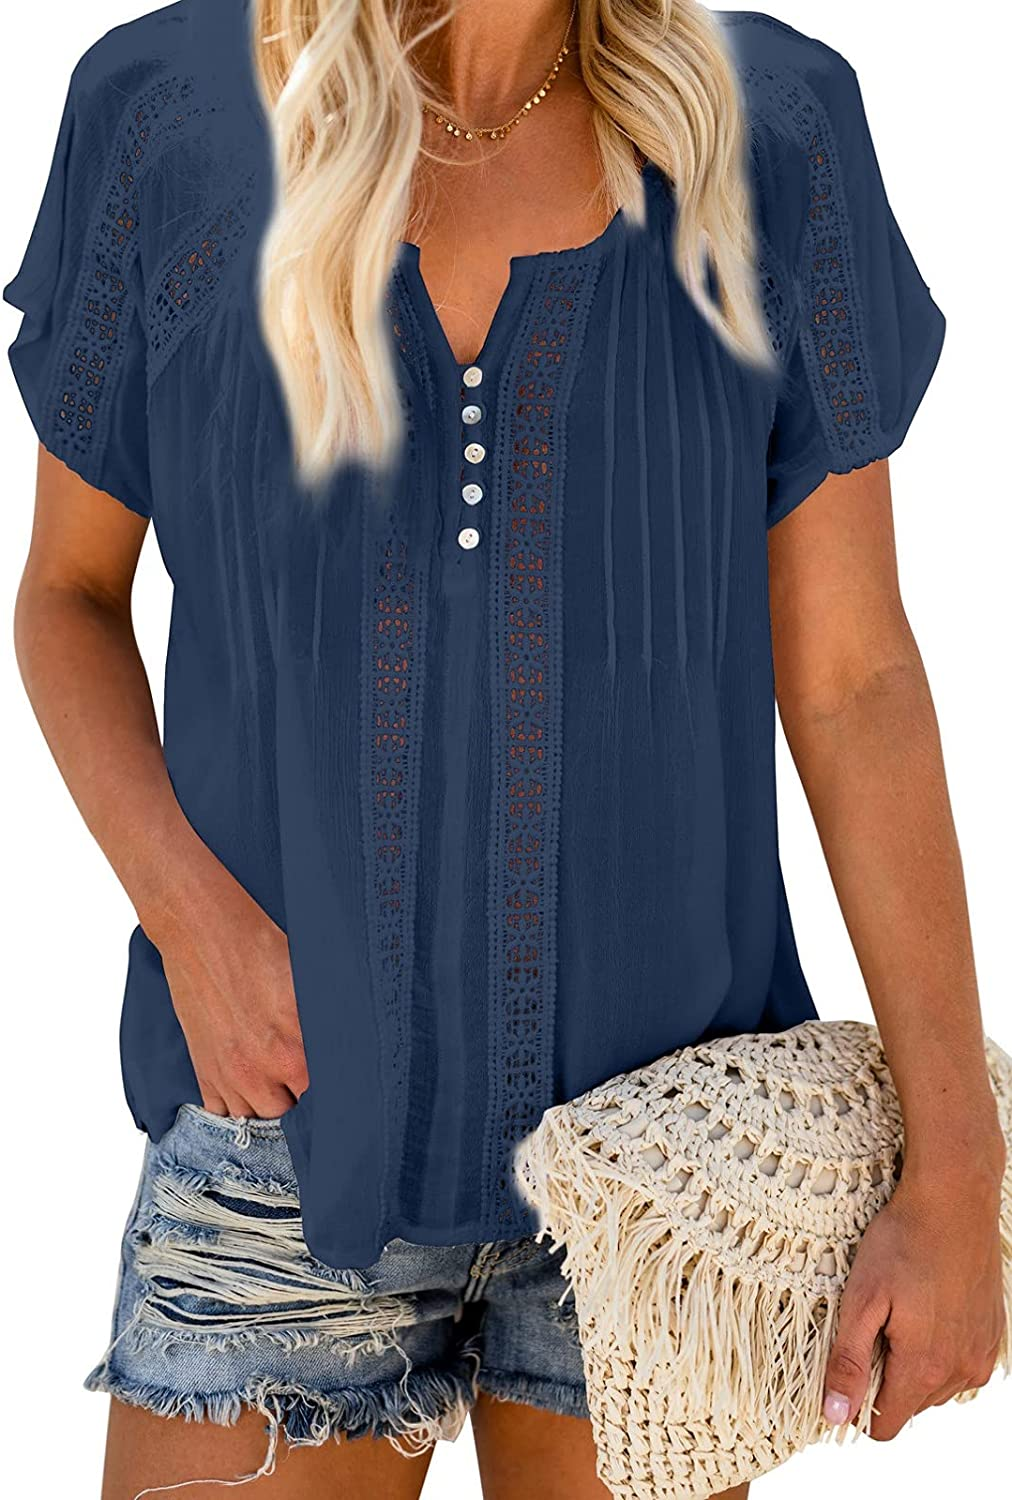 Uusollecy Women's V Neck Solid Crochet Tops, Lace Short Sleeves Blouse, Casual Summer Soft Shirts Blouse Tops